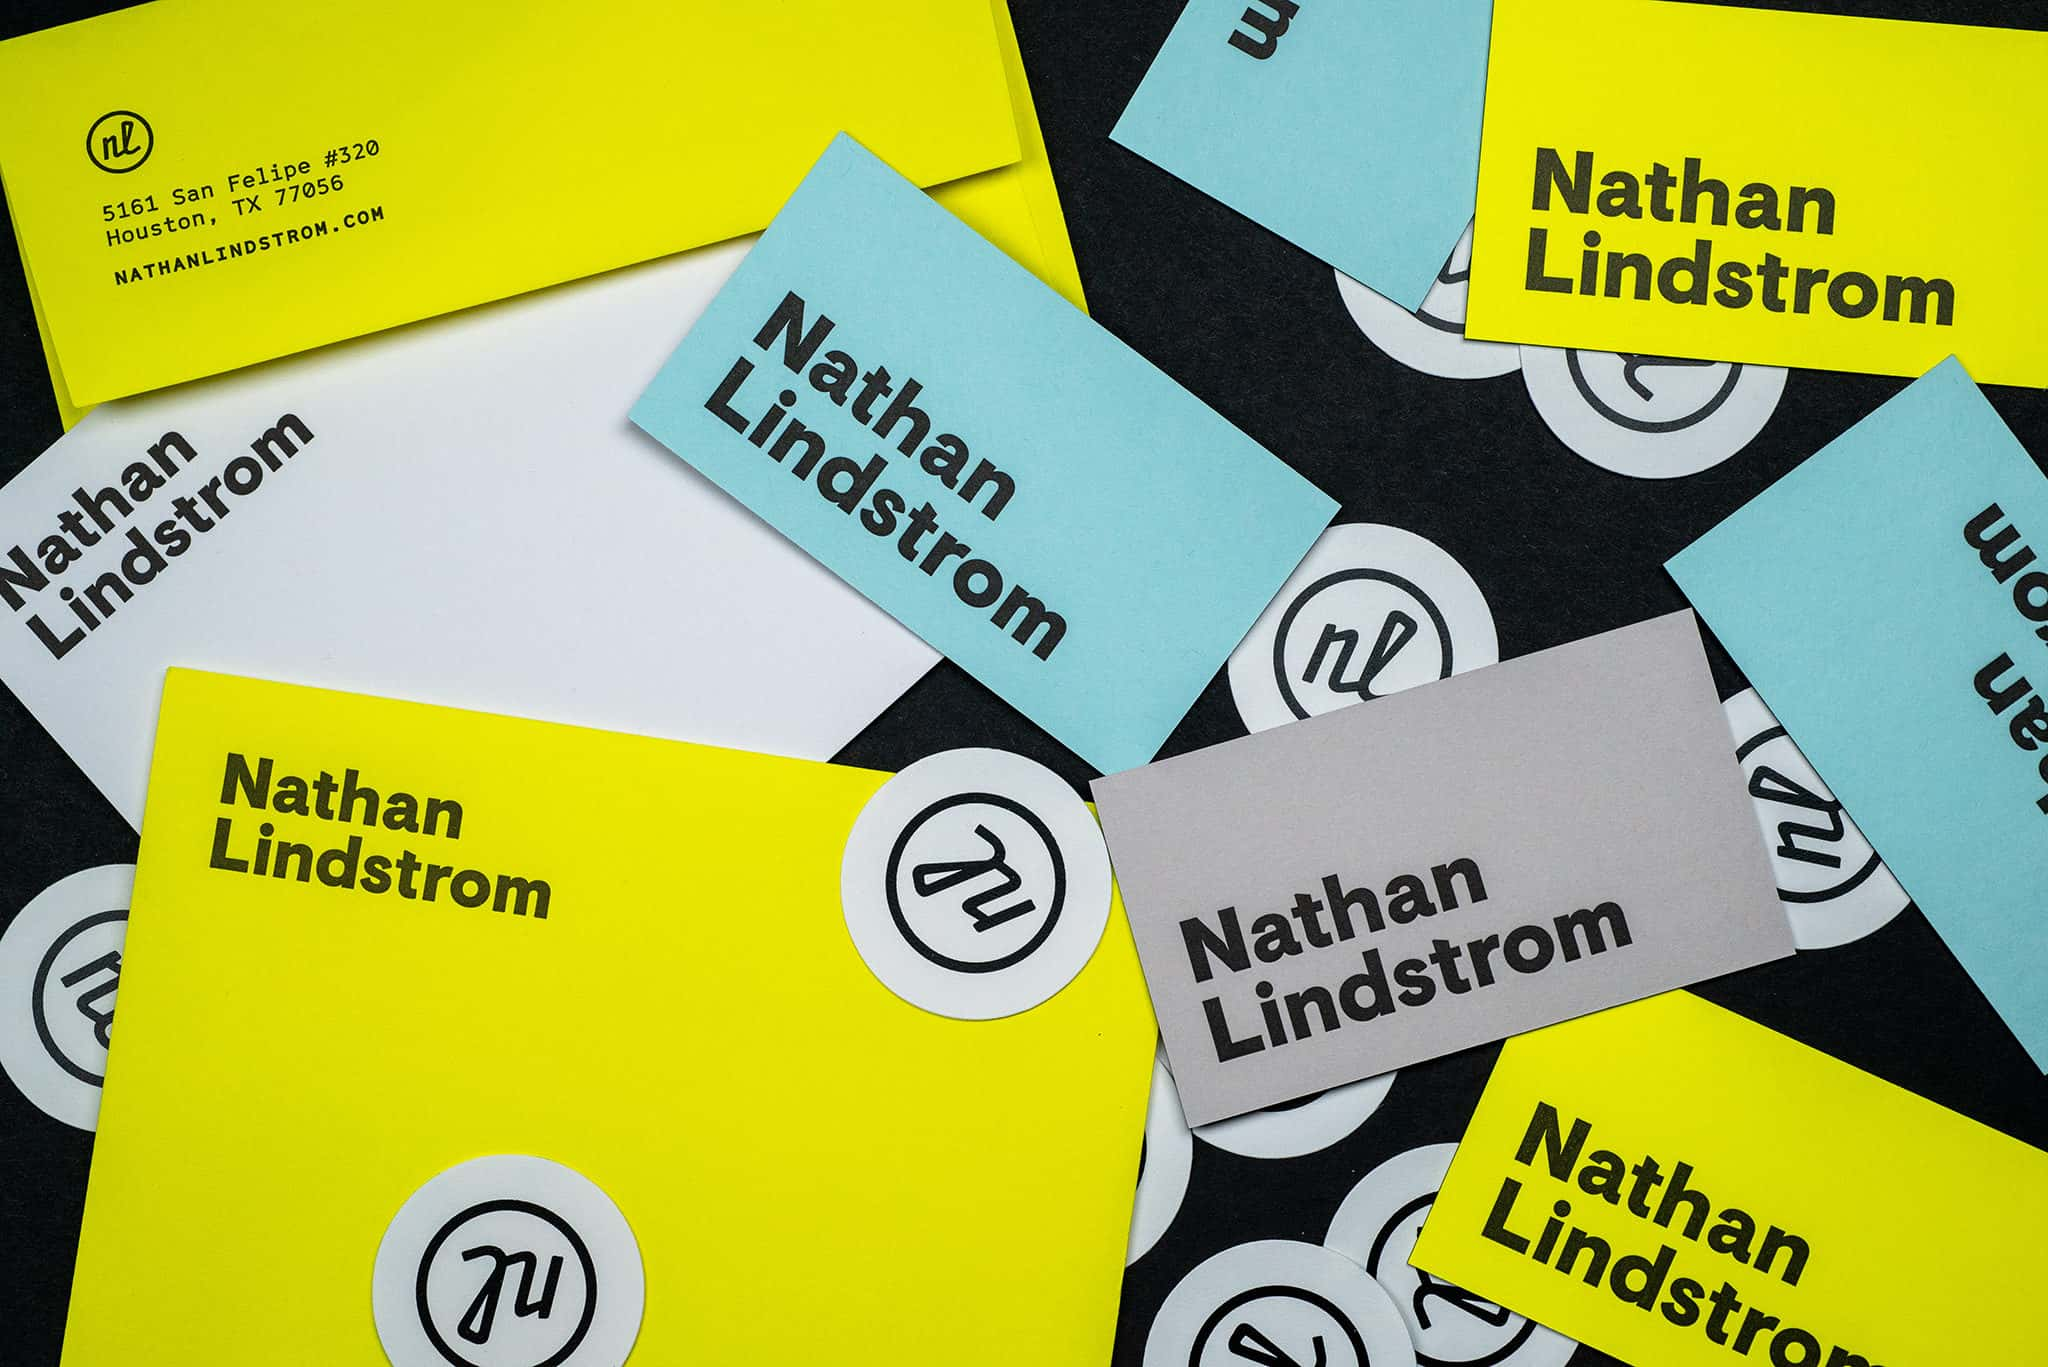 Letterpress printed stationery notecards and stickers for Nathan Lindstrom Photography | Designed by Field of Study: A branding and graphic design consultancy | Houston TX | Jennifer Blanco & John Earles